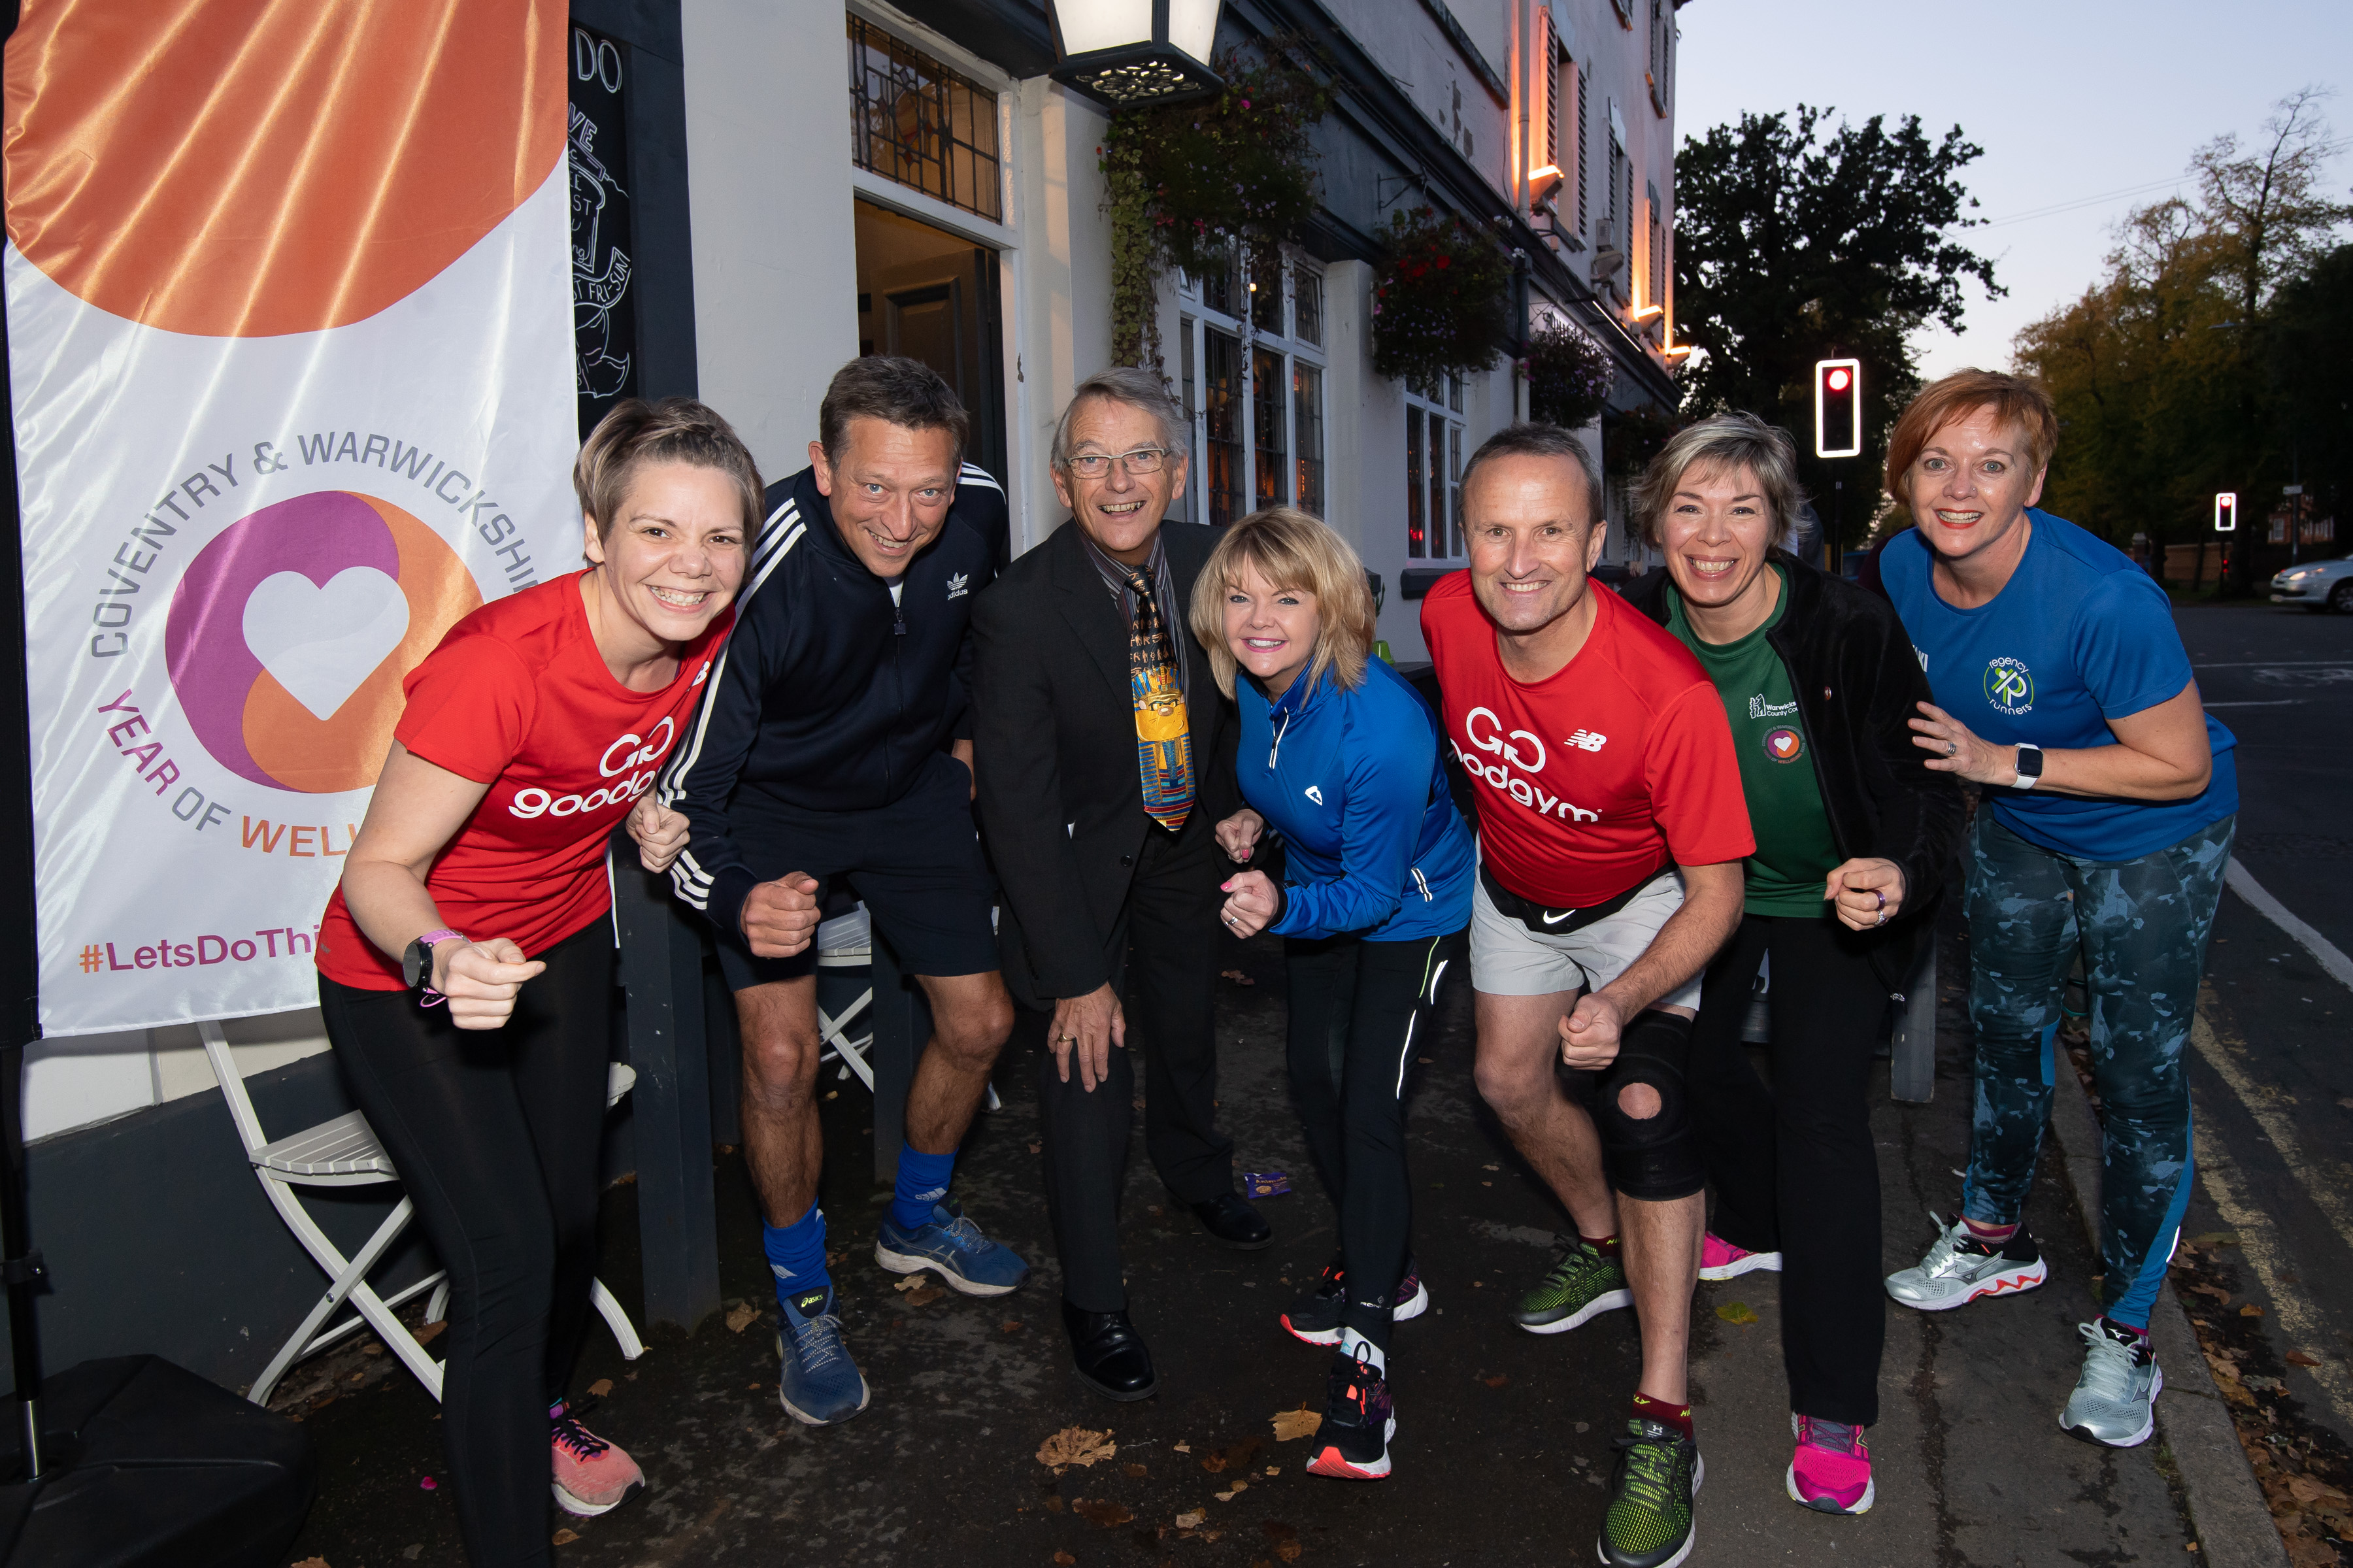 Running group launches in Warwick district to do good deeds for the community